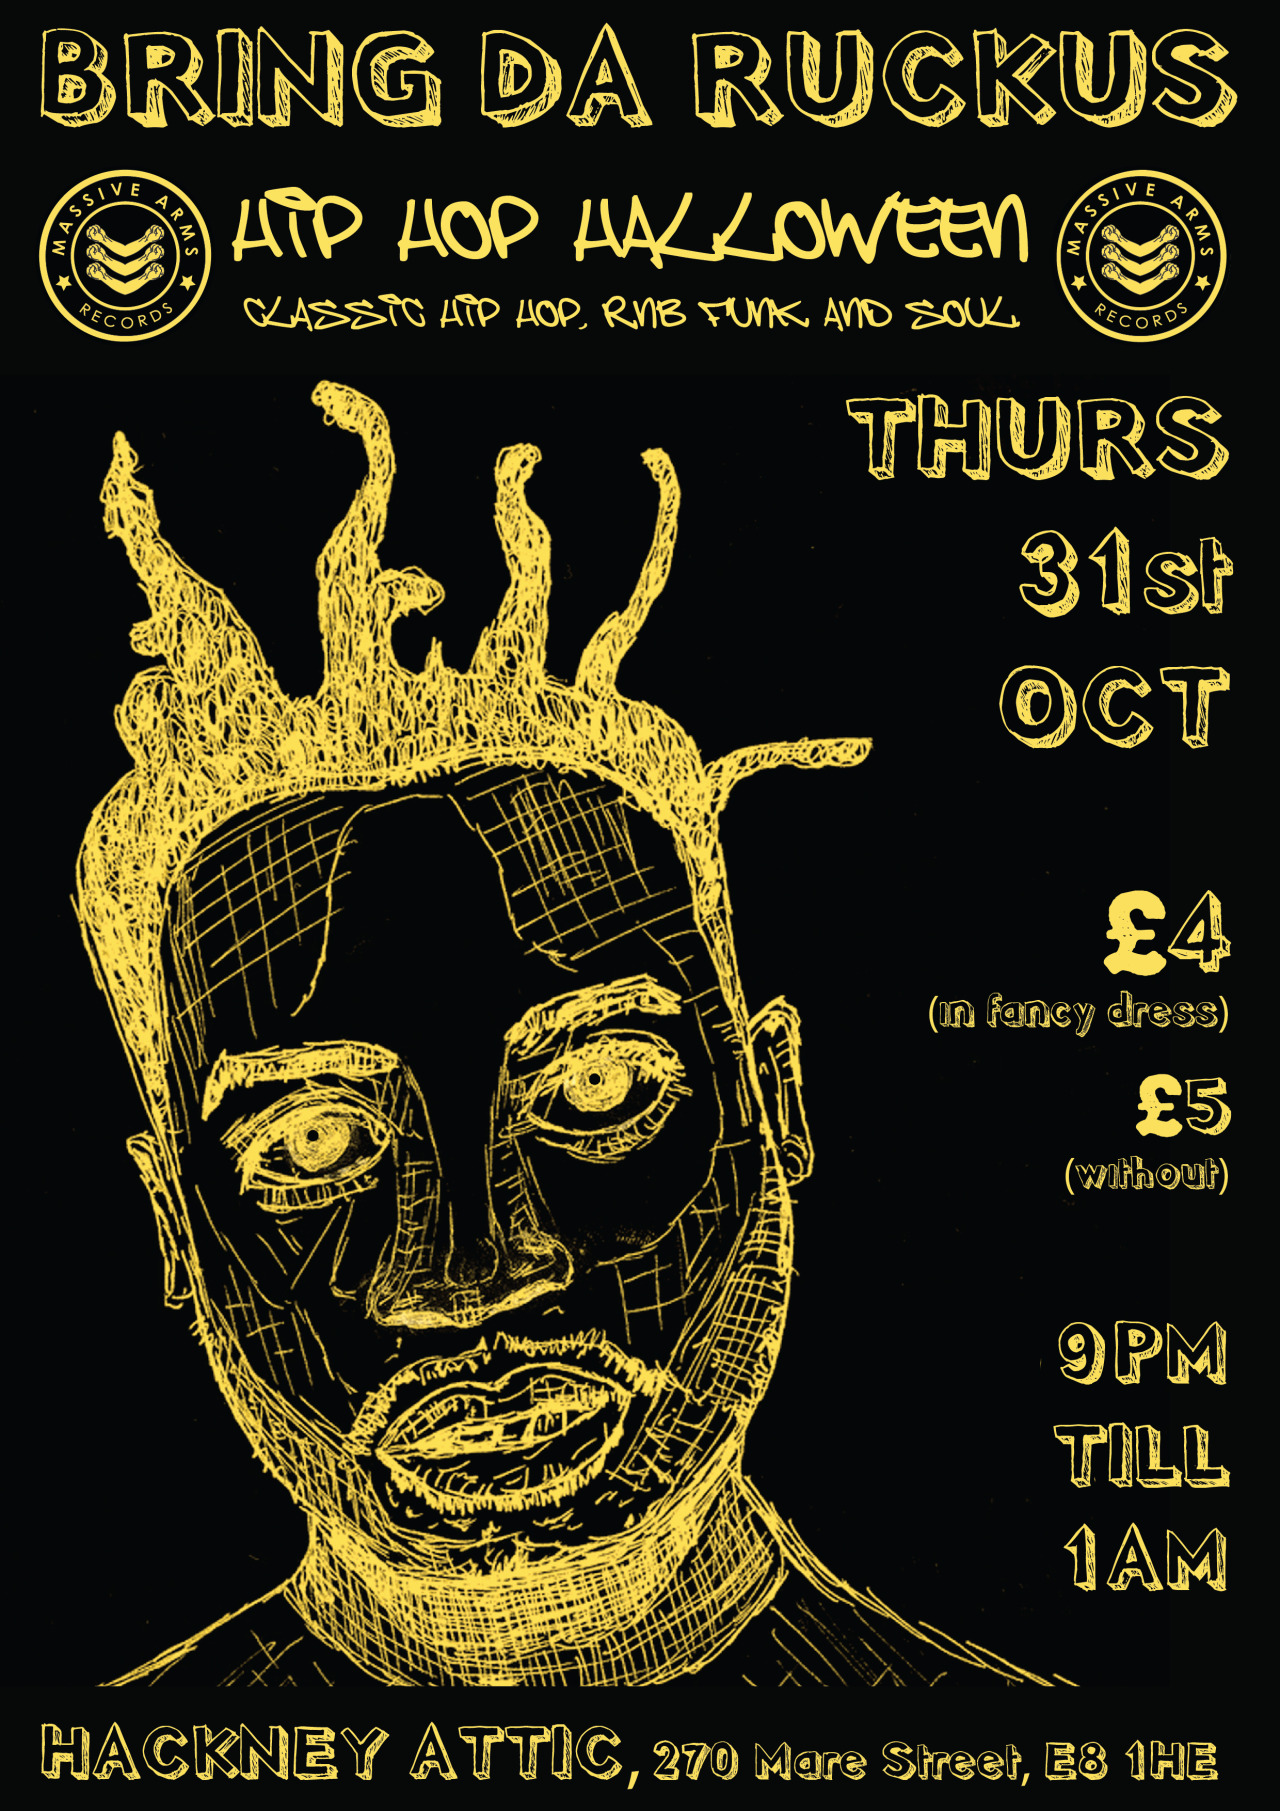 "HIP-HOP HALLOWEEN  If you like Hip-Hop and you like Halloween then this event is for you!  The Massive Arms crew is bringing together the two for a special Wu Tang tribute night.  £4 if you turn up in fancy dress or £5 if you're ""too cool for all that.""   The night runs from 9pm-1am at the Hackney Attic."